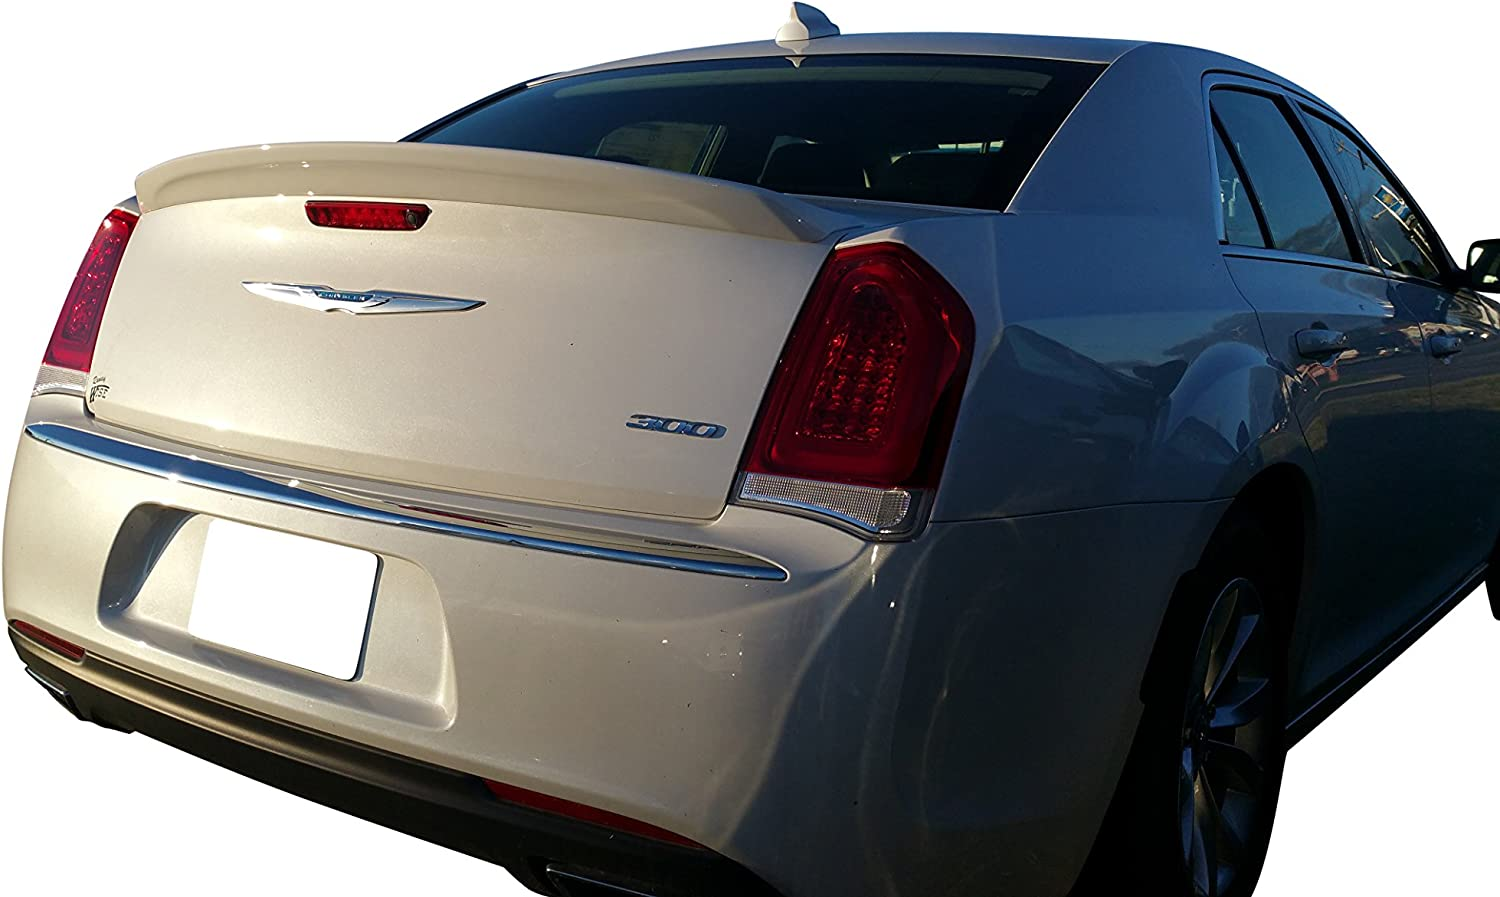 Facory Style SRT Spoiler for the Chrysler 300 2012-2018 Painted in the Factory Paint Code of Your Choice 563 PXT